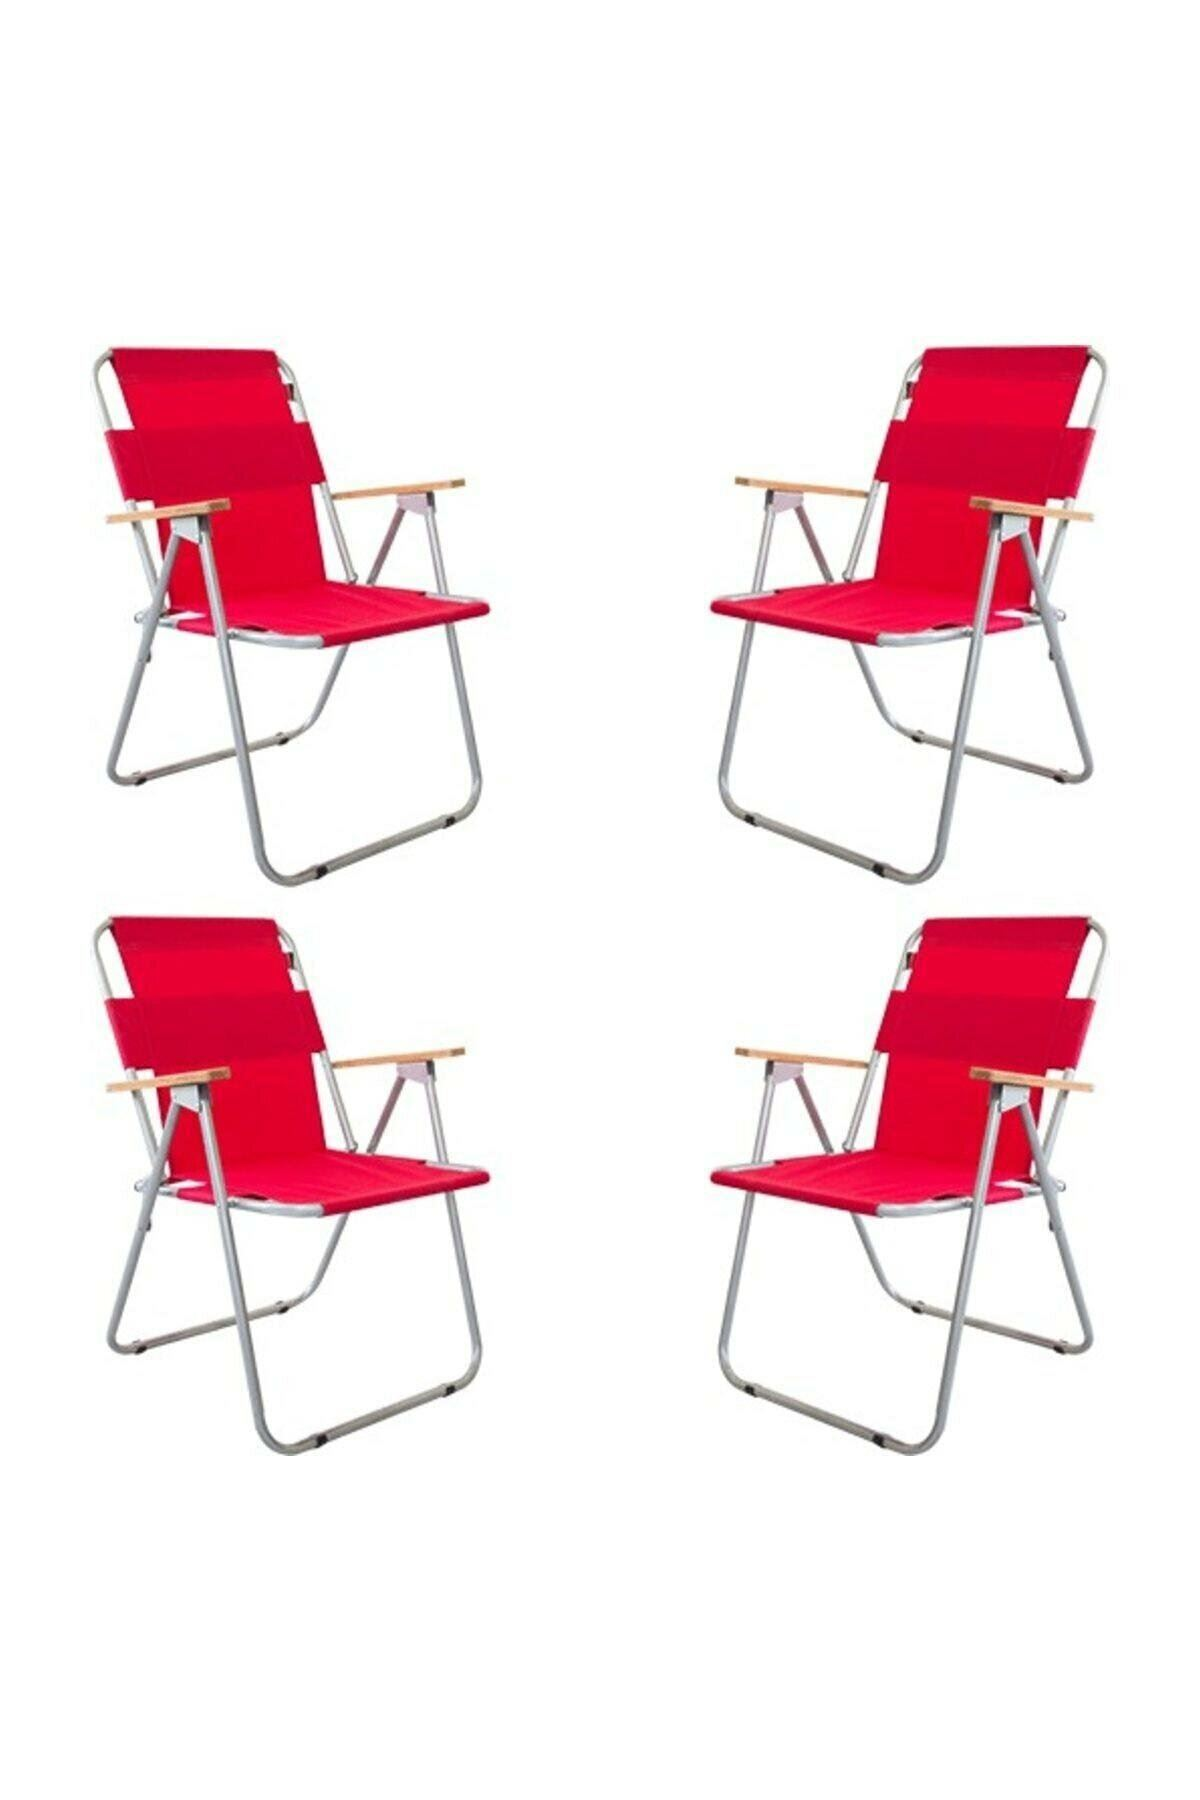 Bofigo 4 Pieces Folding Chair Camping Chair Balcony Chair Foldable Picnic and Garden Chair Red